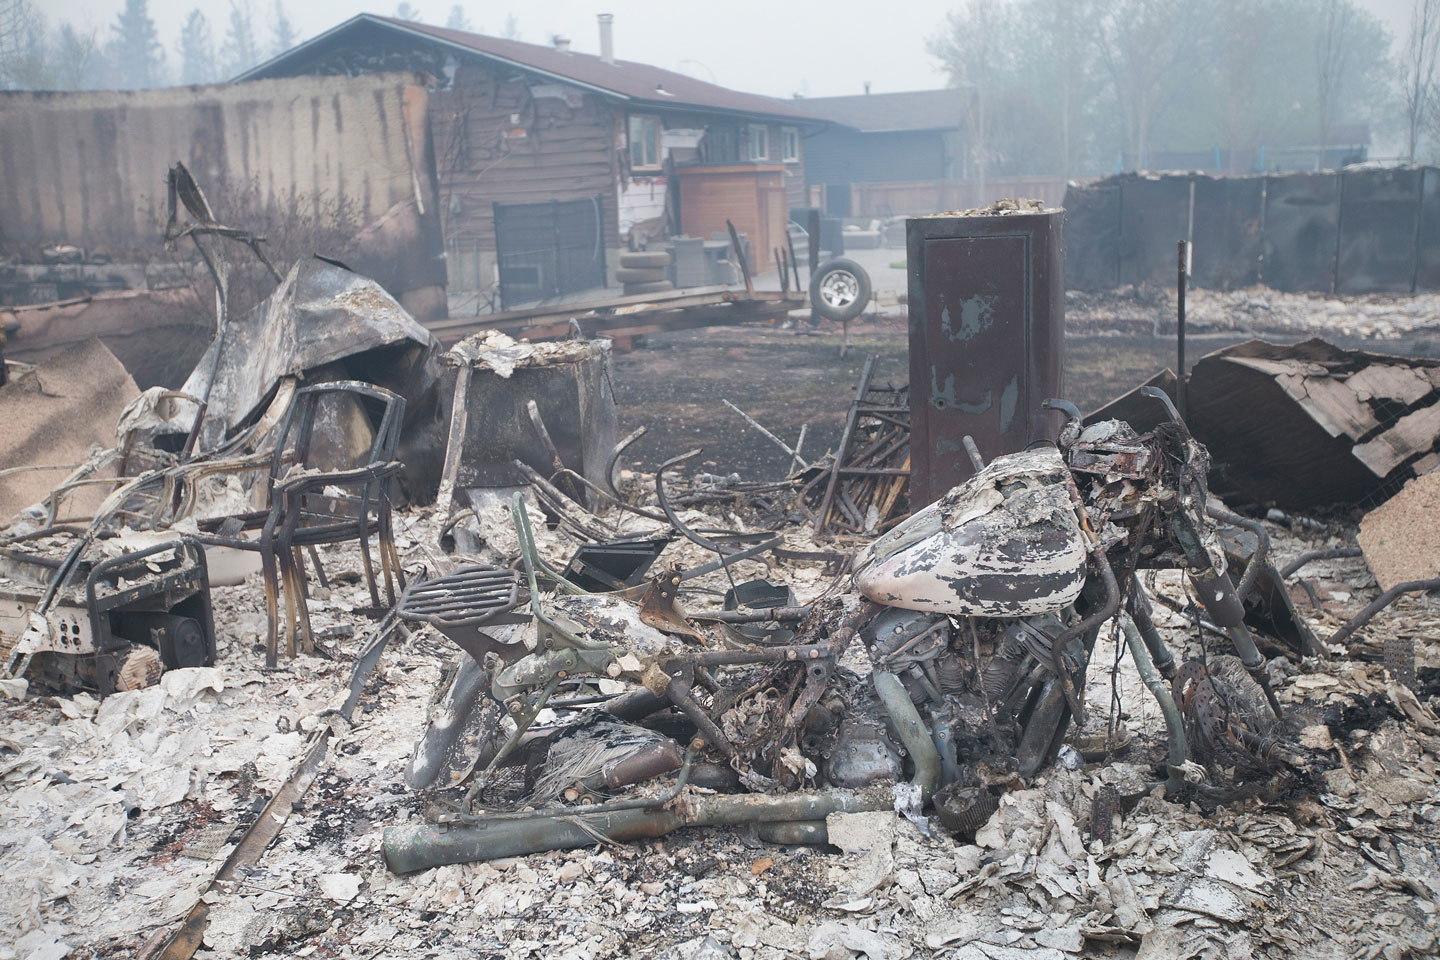 FORT MCMURRAY, AB - MAY 07:  Home foundations and skeletons of possesions are all that remain in parts of a residential neighborhood destroyed by a wildfire on May 7, 2016 in Fort McMurray, Canada. Wildfires, which are still burning out of control, have forced the evacuation of more than 80,000 residents from the town.  (Photo by Scott Olson/Getty Images)